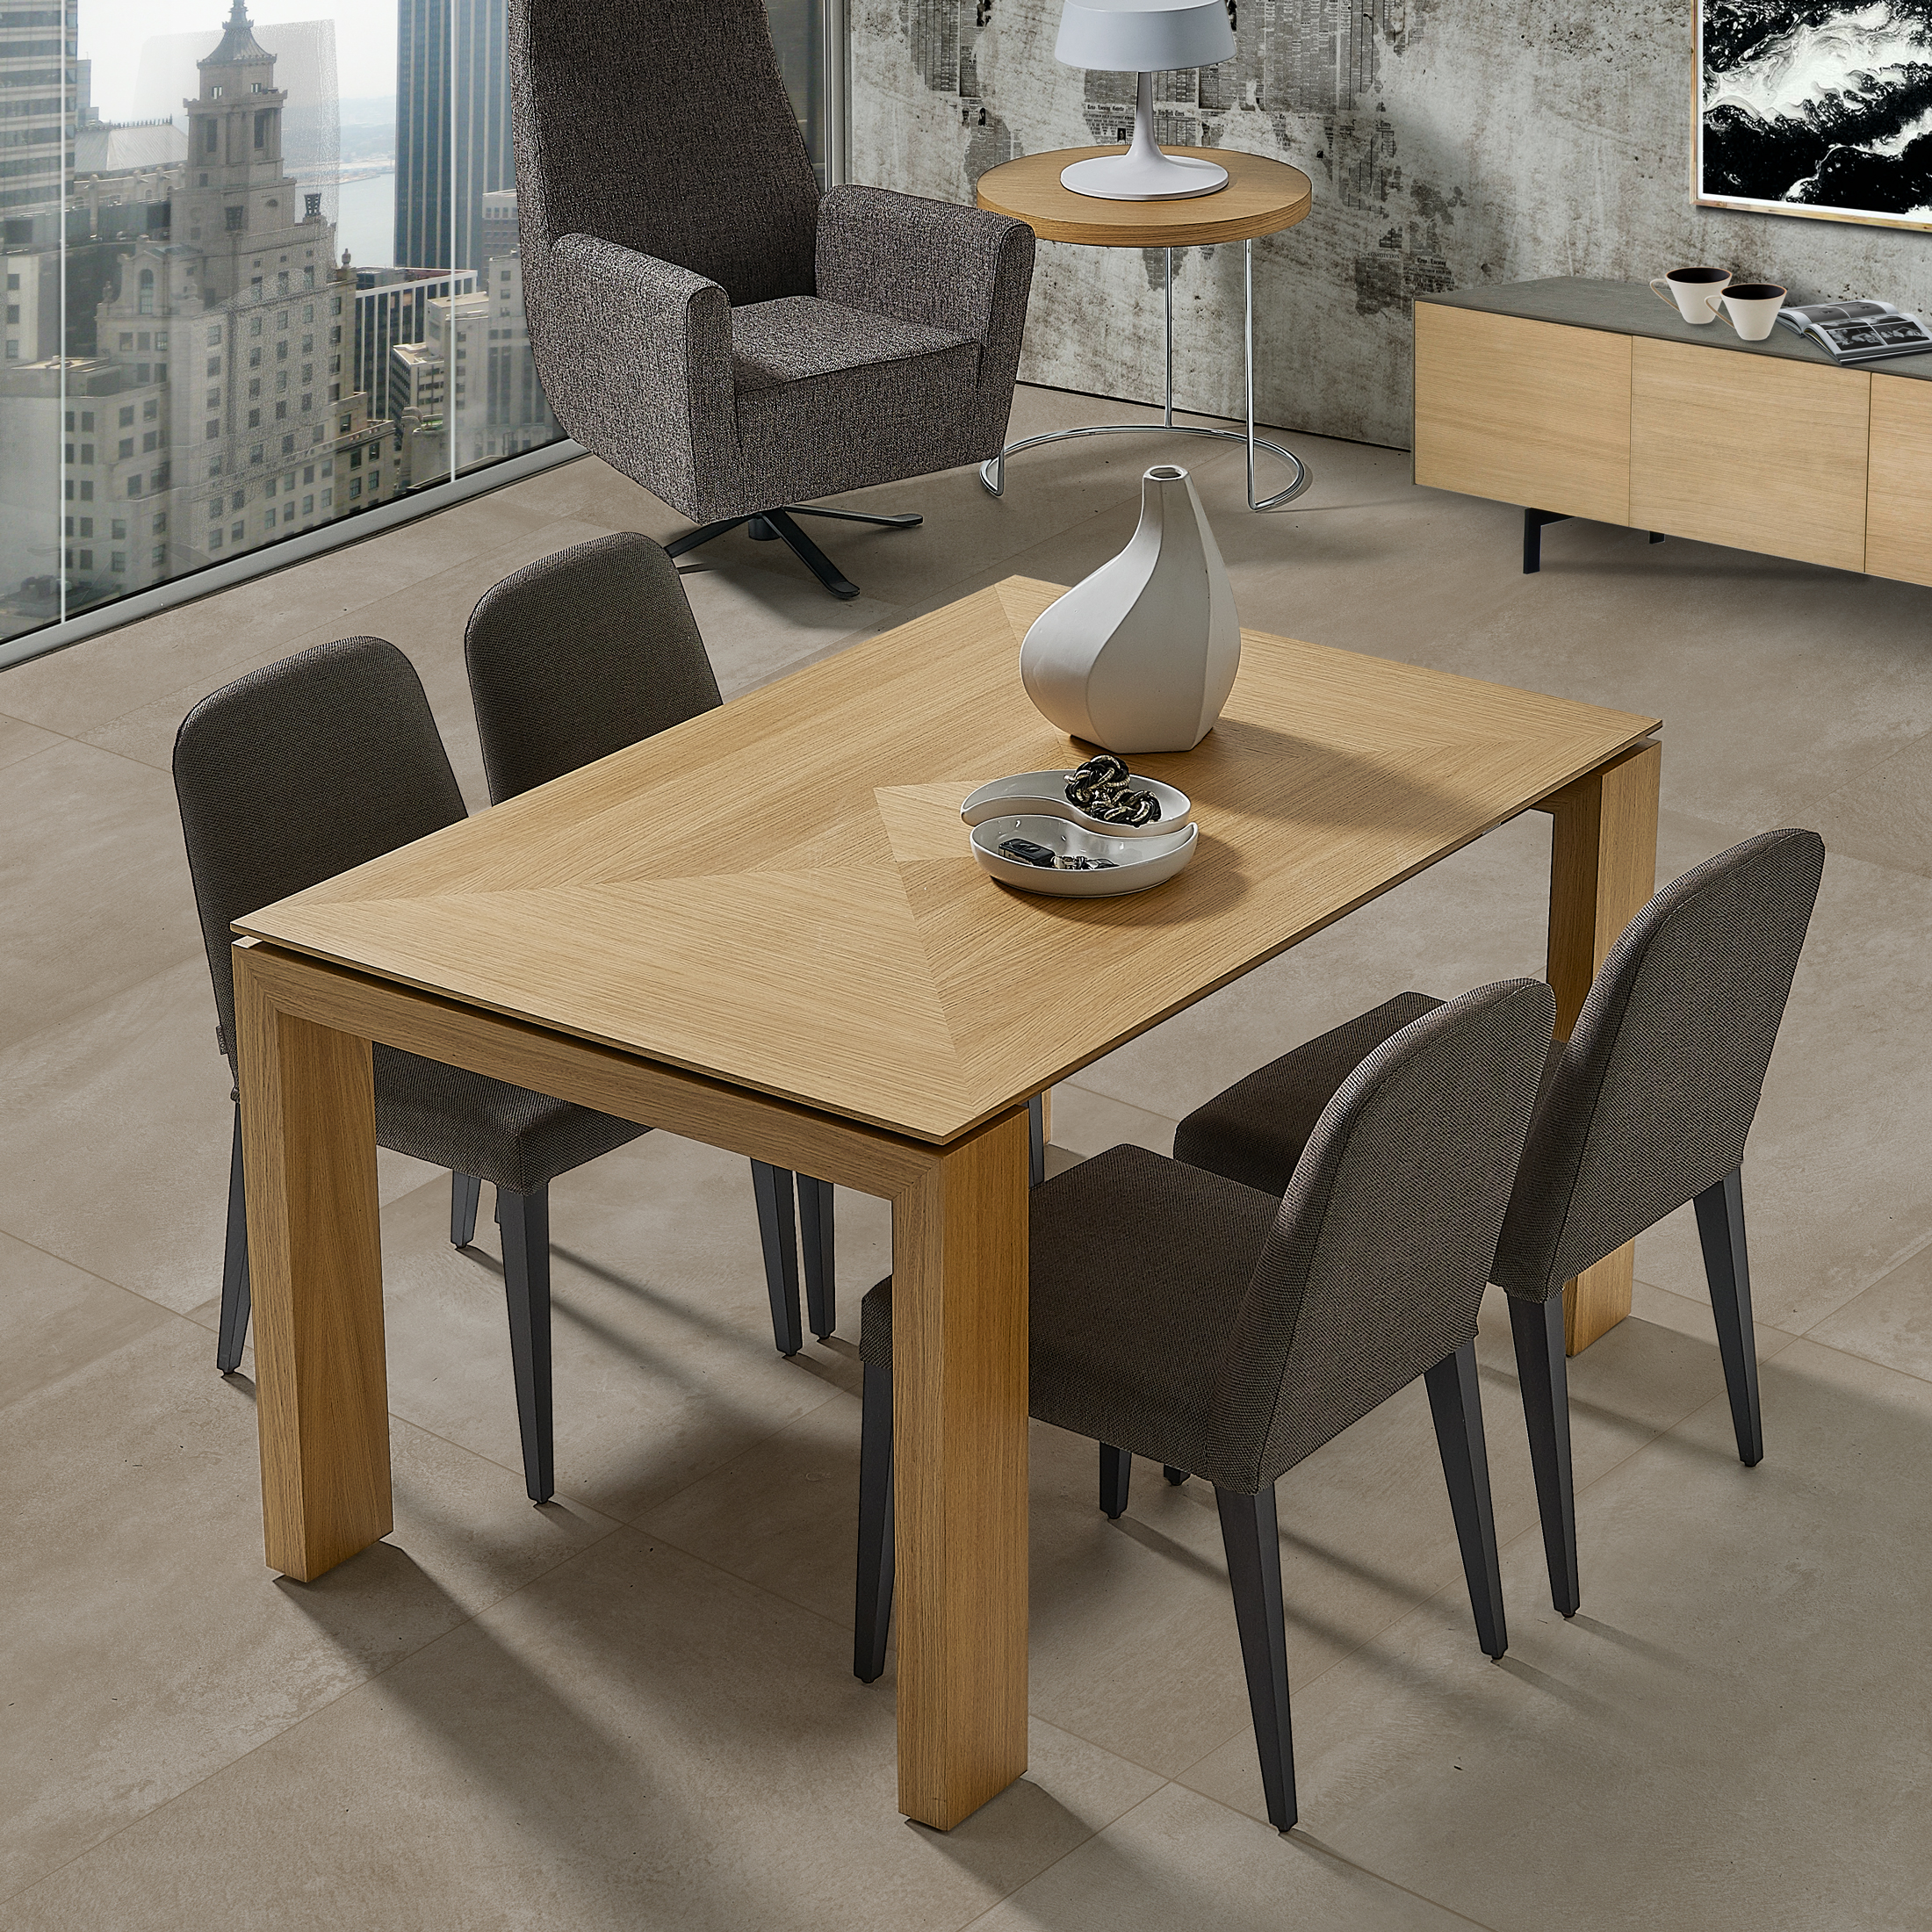 DOOS. Casia S01 chair. Global table.